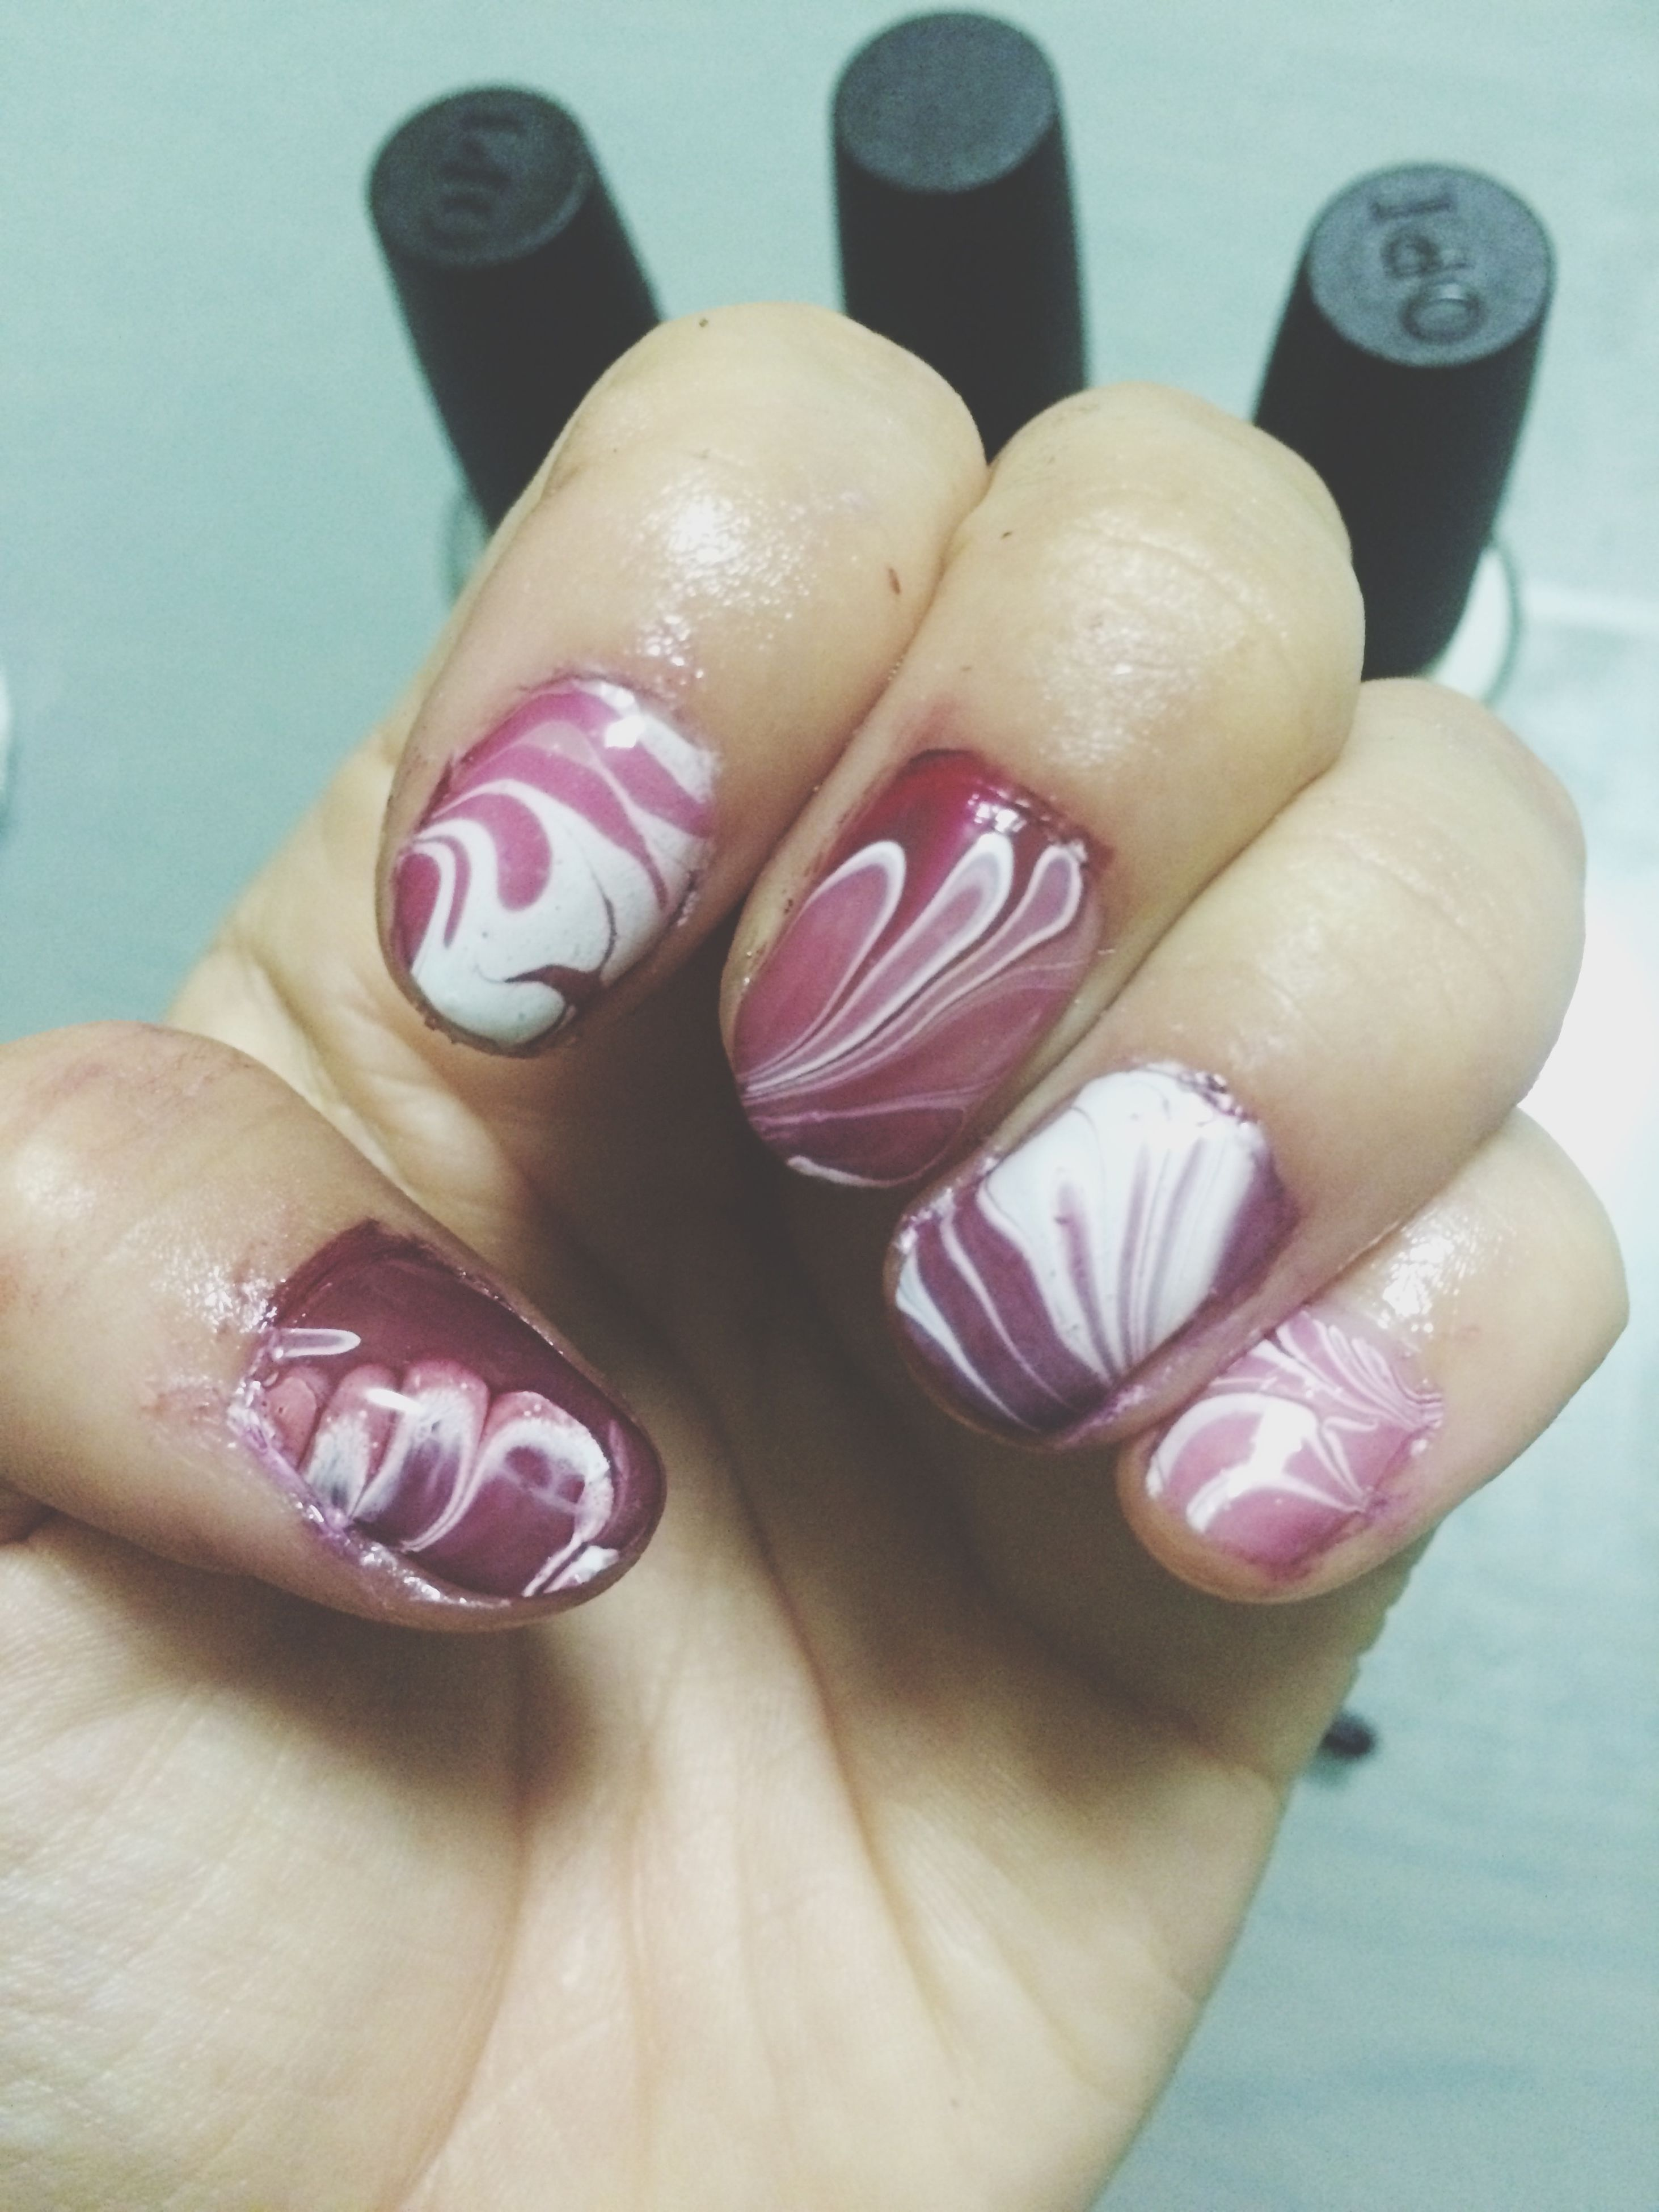 person, part of, close-up, holding, human finger, lifestyles, cropped, personal perspective, pink color, leisure activity, indoors, unrecognizable person, flower, nail polish, focus on foreground, showing